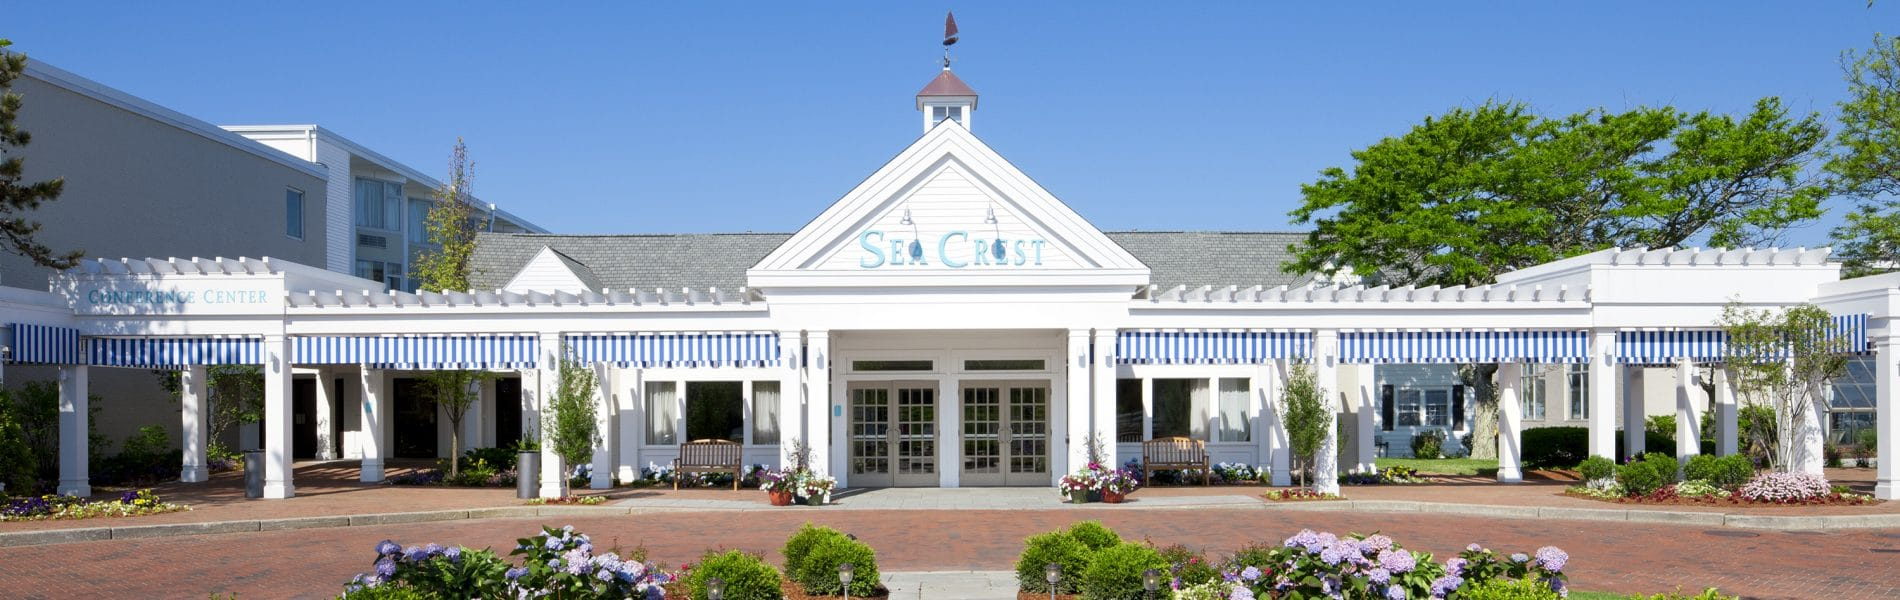 Sea Crest Beach Hotel Falmouth Cape Cod